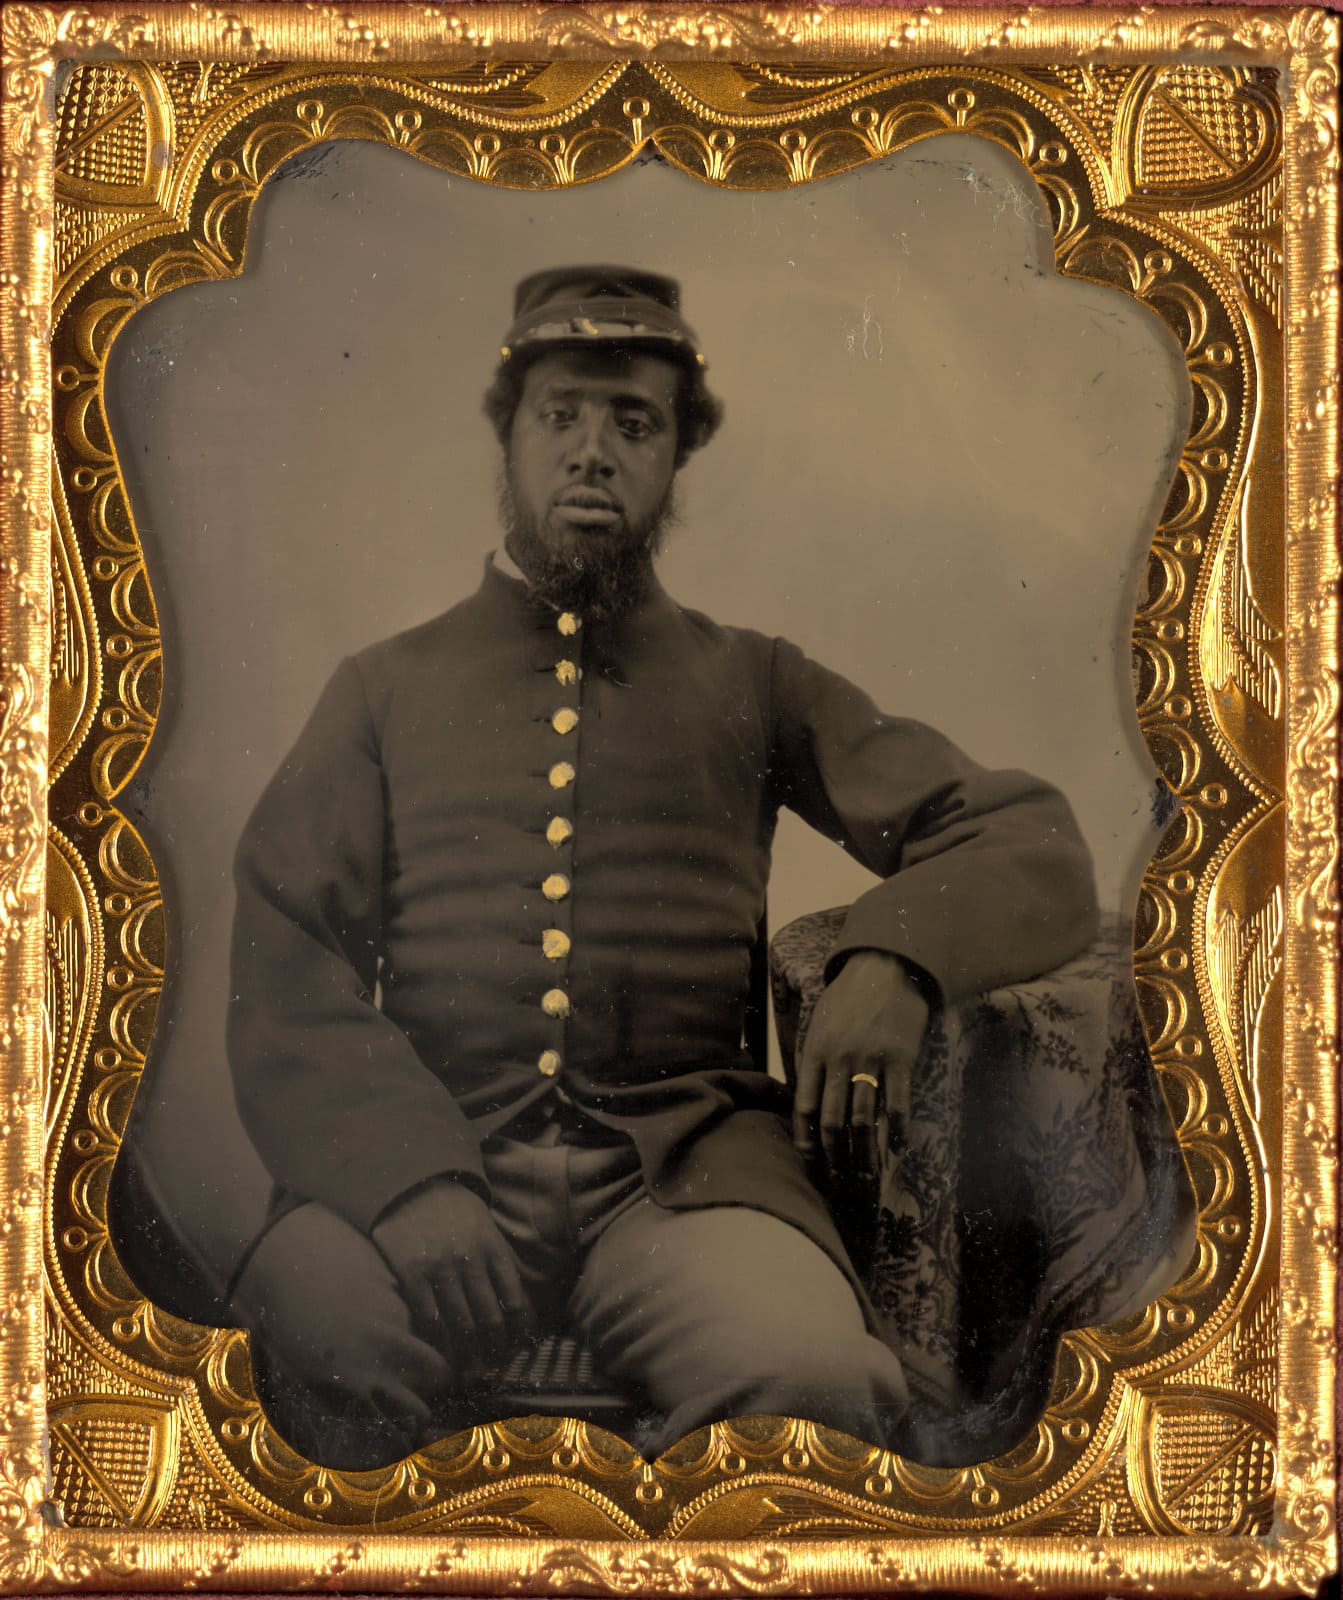 Unidentified African American soldier during the Civil War